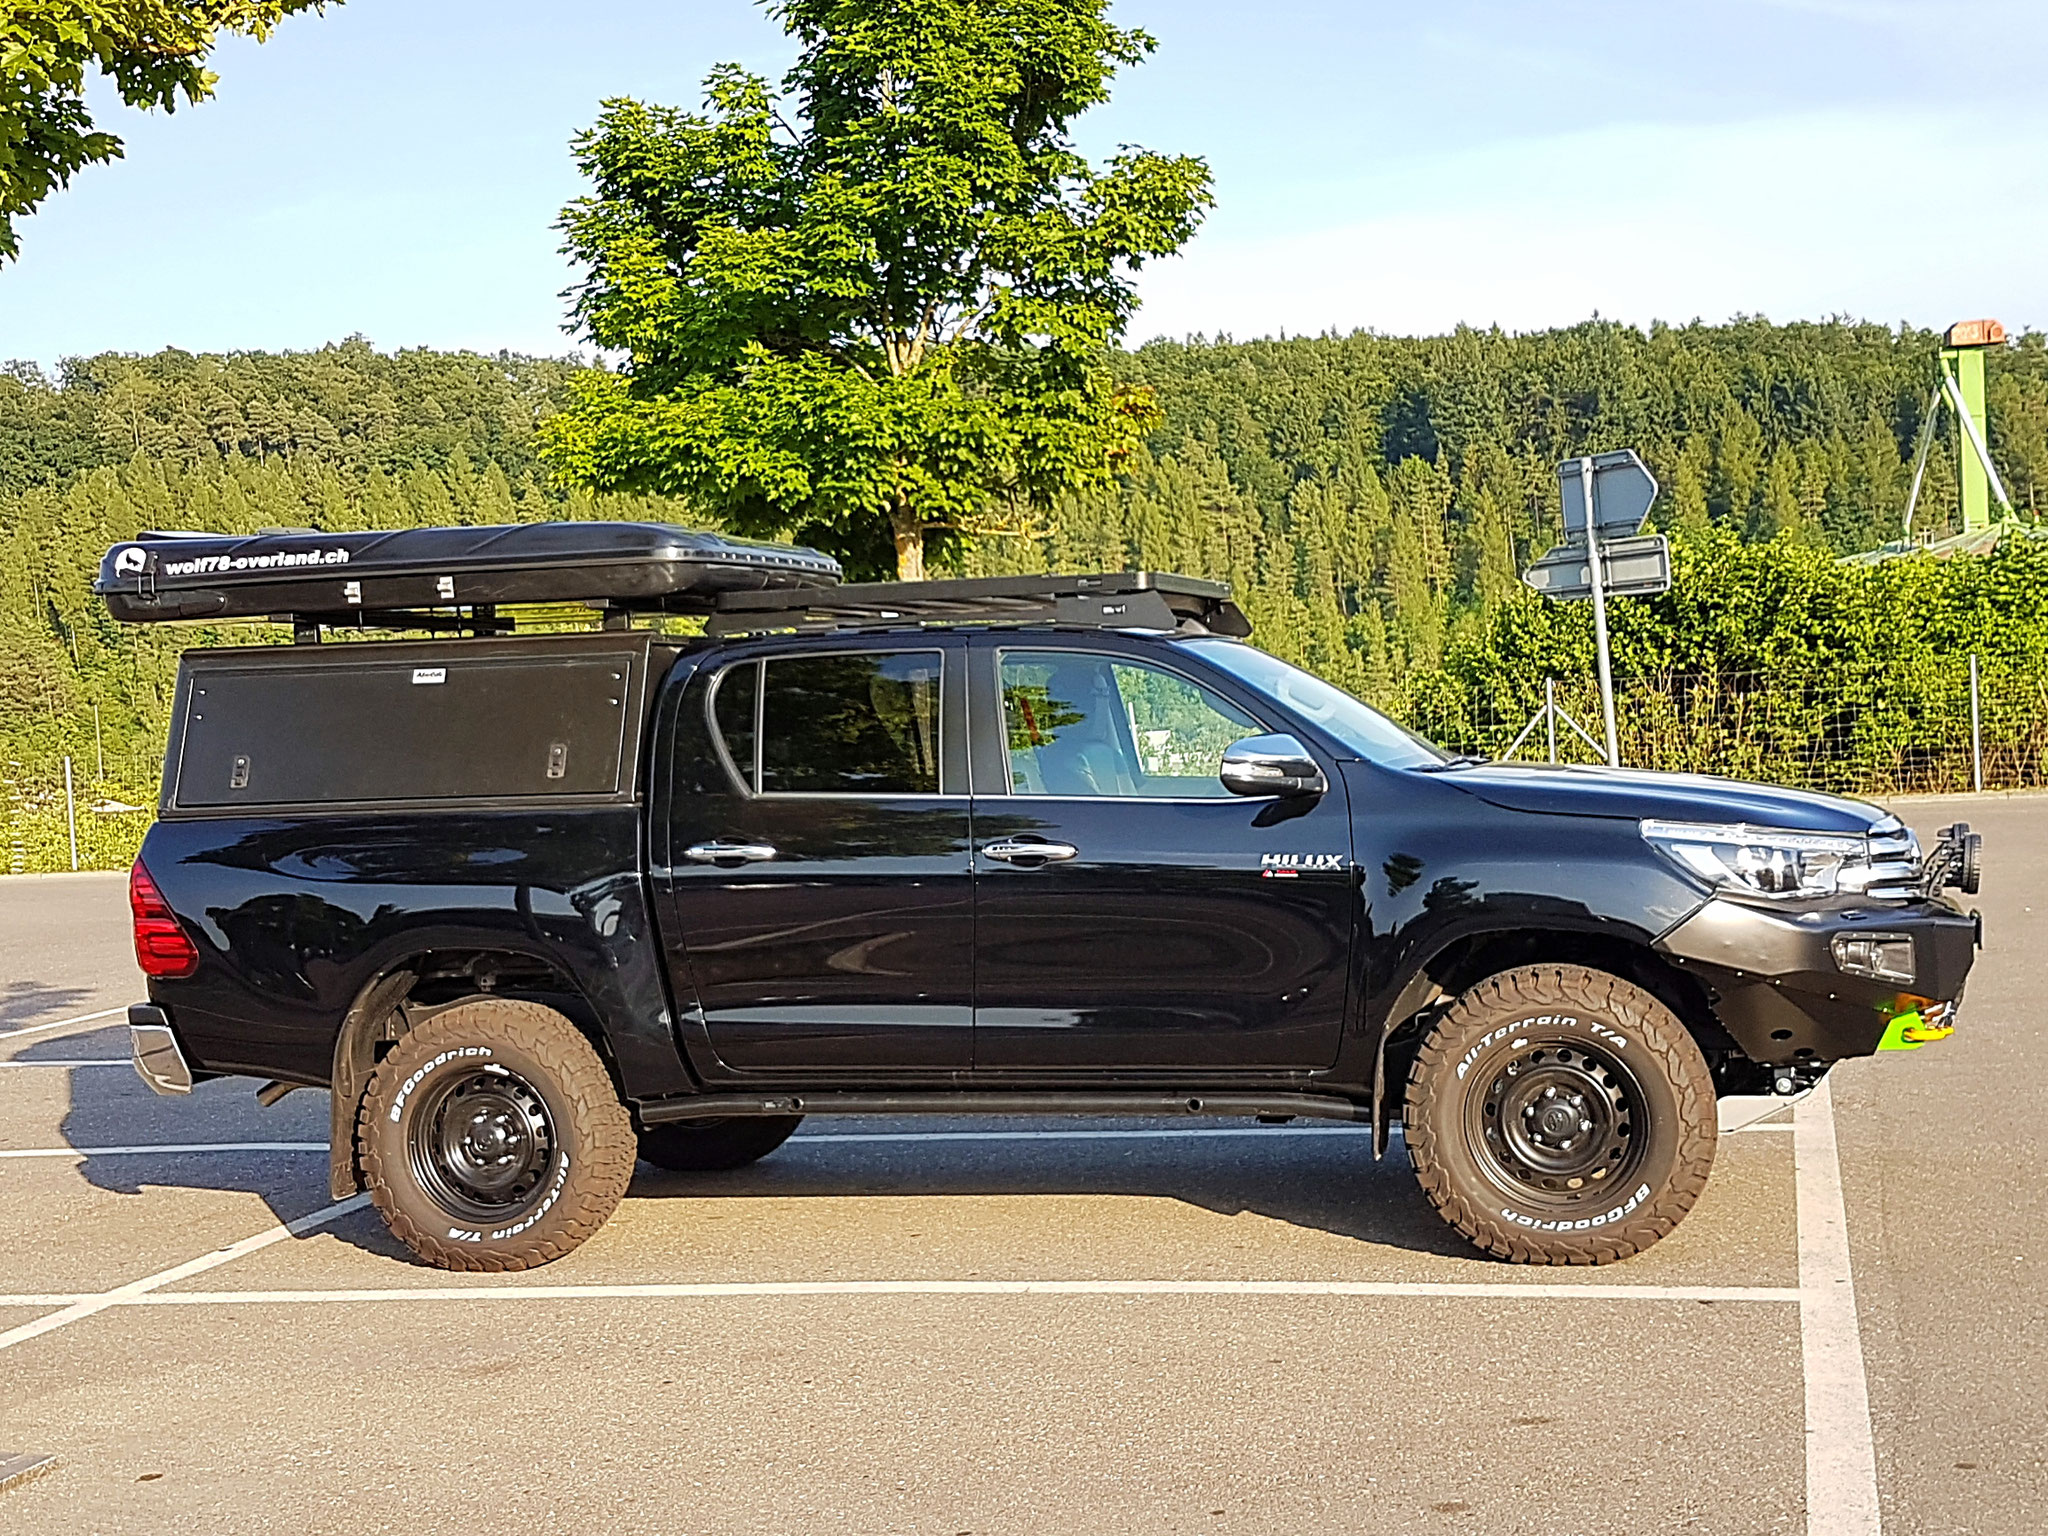 Toyota Hillux 2016 2017 2.4 Revo Blackwolf wolf78-overland.ch offroad 4x4 AFN Frontbumper Frontrunner Horntools Rival James Baroude BF-Goodrich storm72.ch wolf78